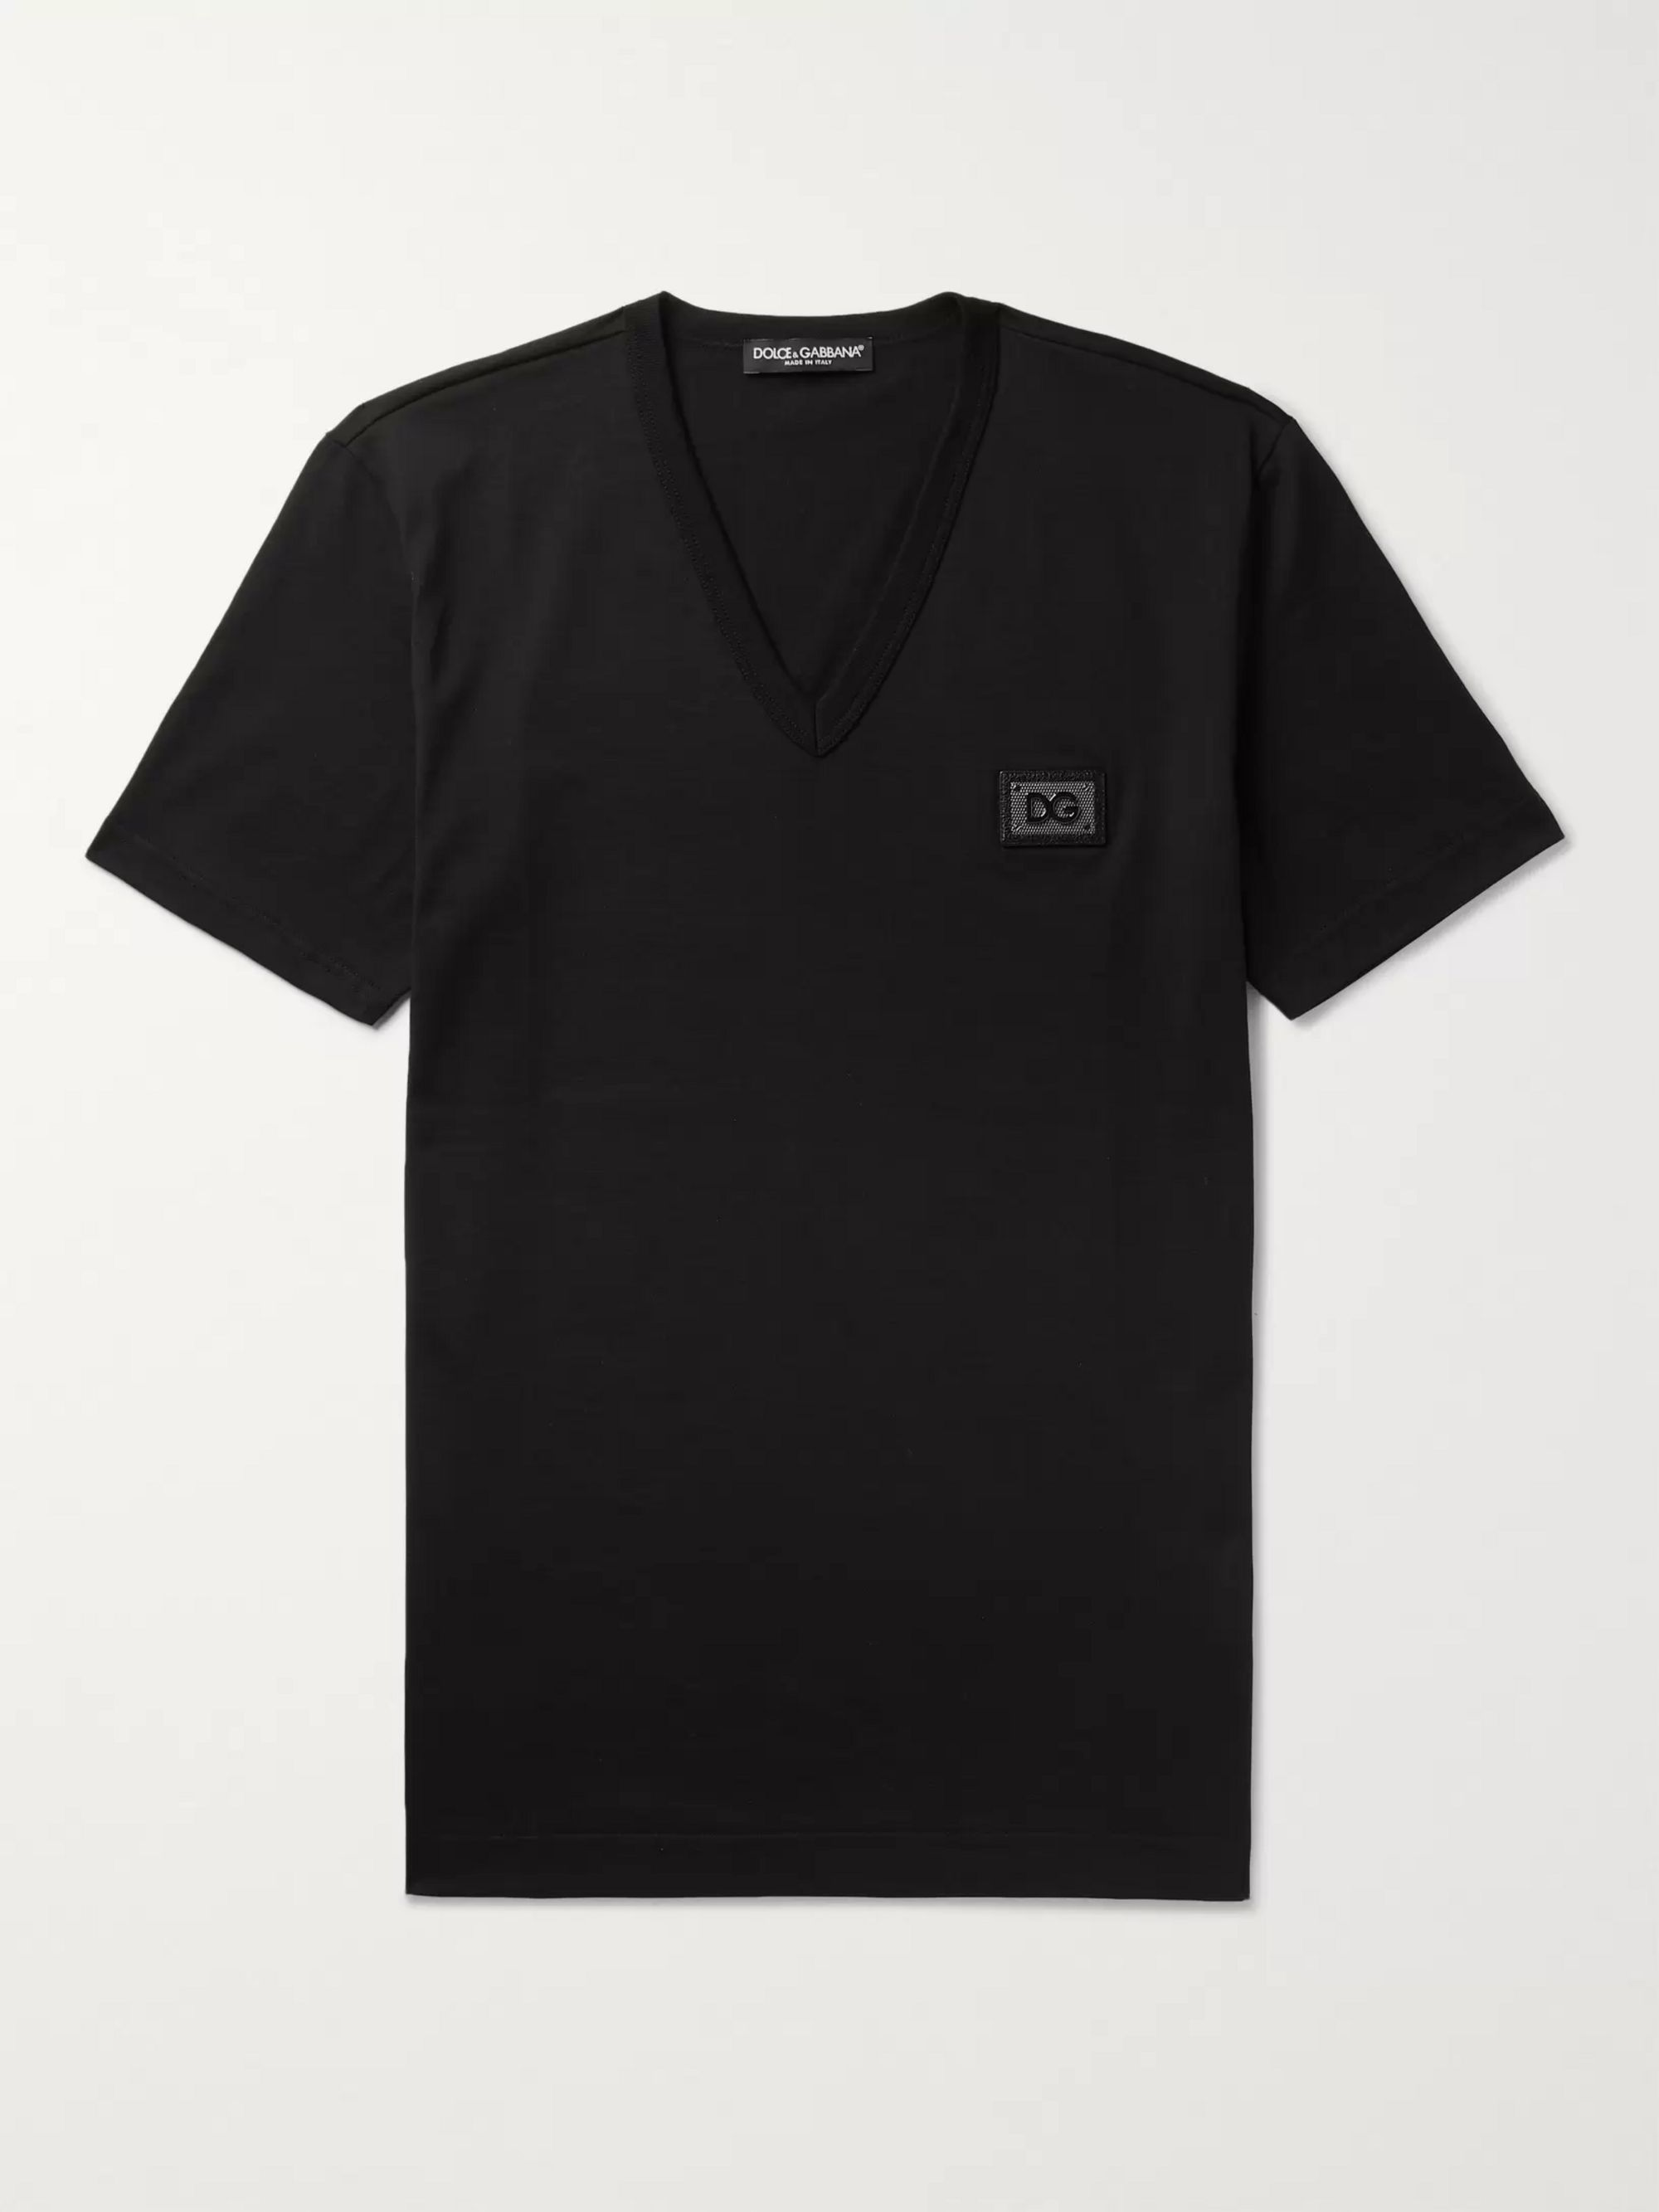 Dolce & Gabbana Slim-Fit Logo-Appliquéd Cotton-Jersey T-Shirt